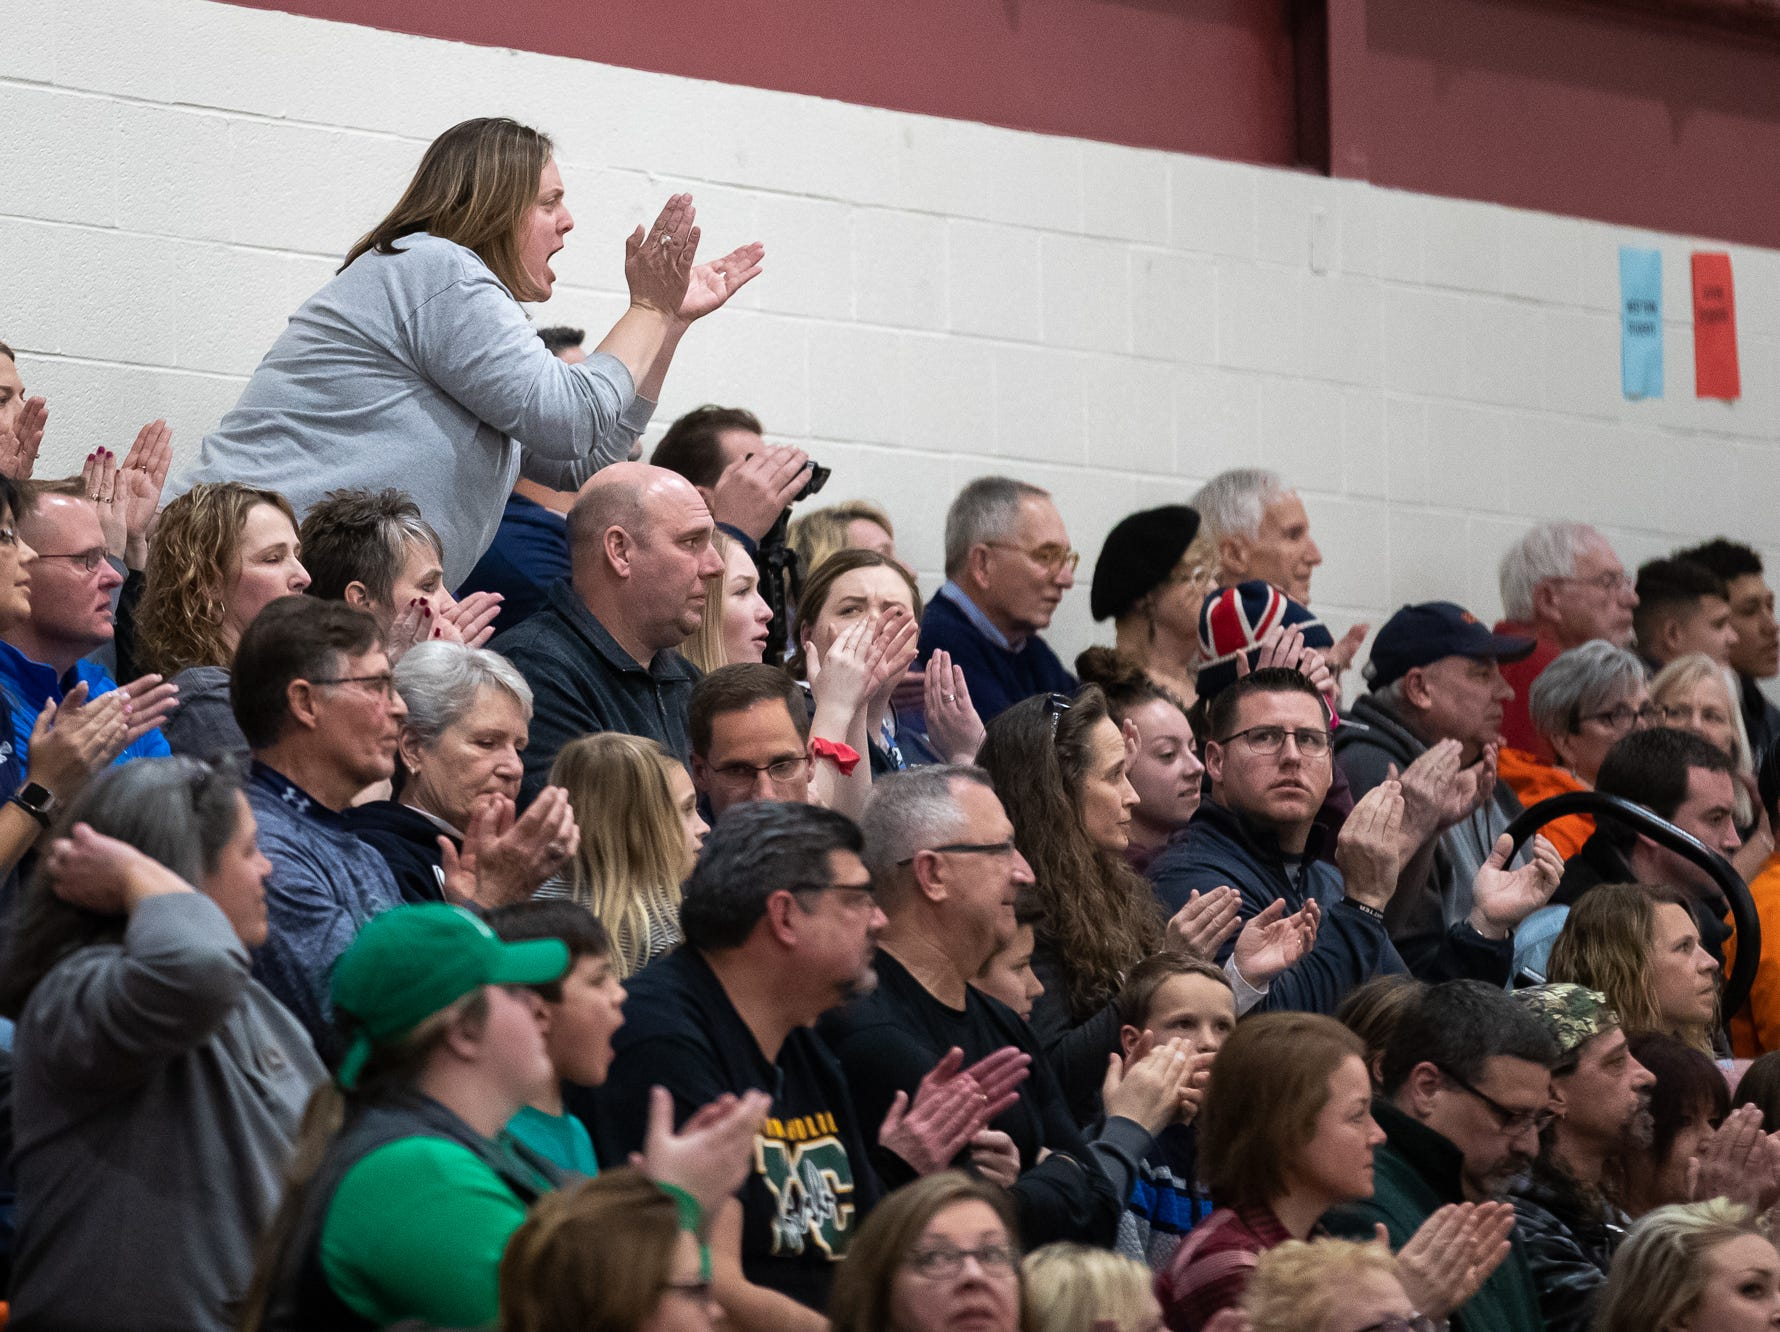 A fan reacts during the second half of the YAIAA boys' basketball quarterfinals between Littlestown and West York, Saturday, Feb. 9, 2019, at Central York High School. The Littlestown Bolts defeated the West York Bulldogs 73-63.